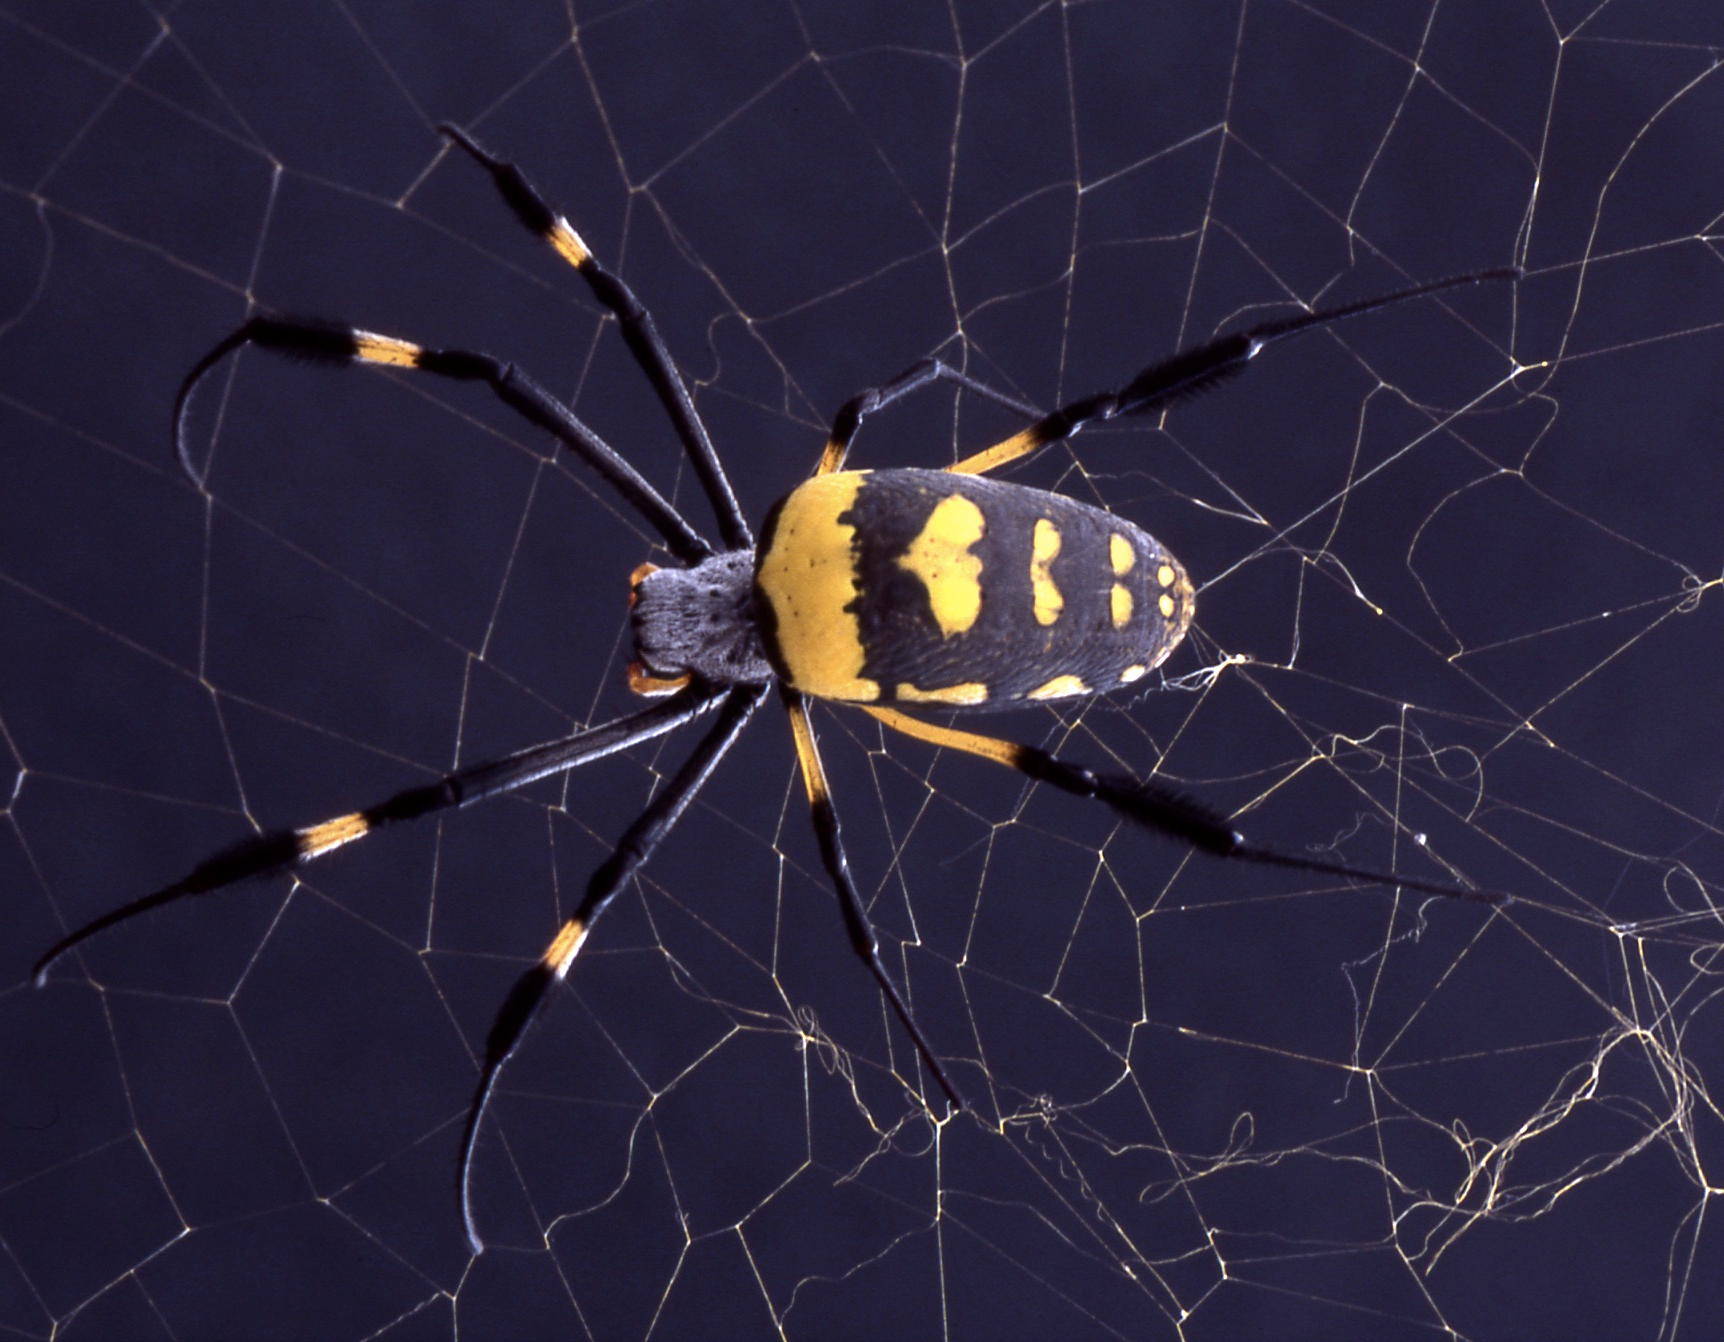 Scientists create novel 'liquid wire' material inspired by spiders' capture silk